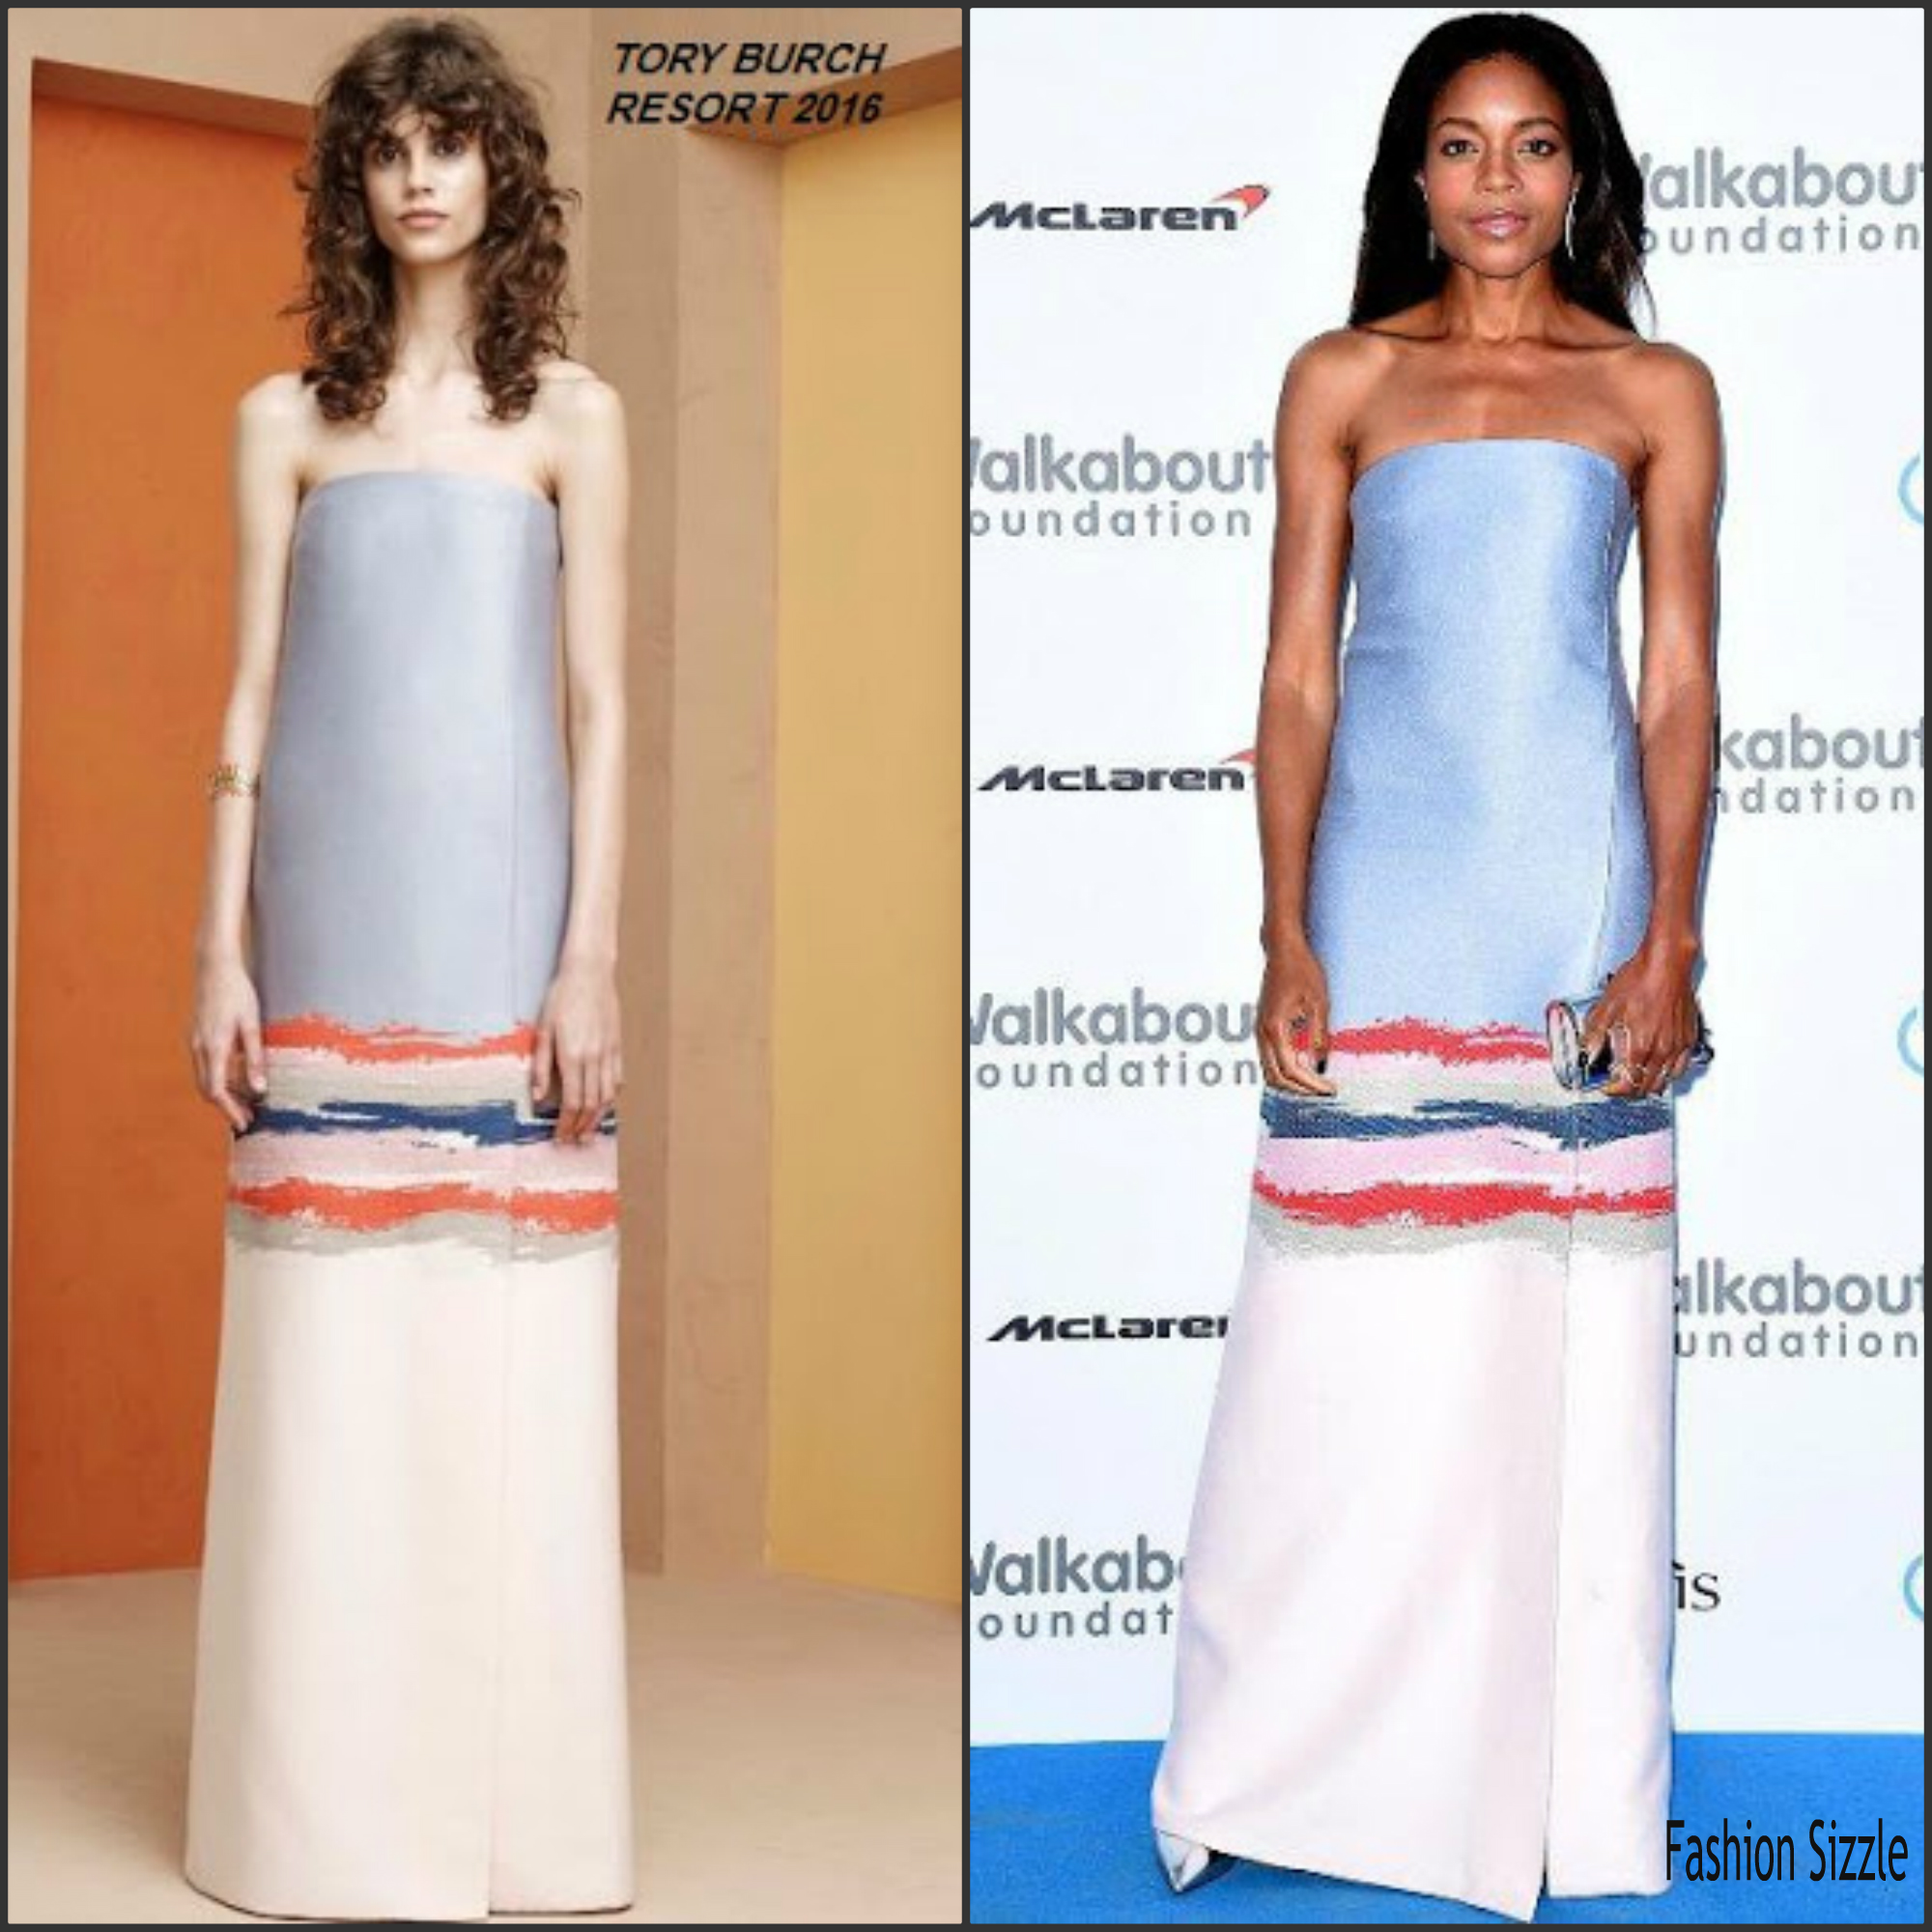 naomie-harris-in-tory-burch-at-the-walkabout-foundation-gala